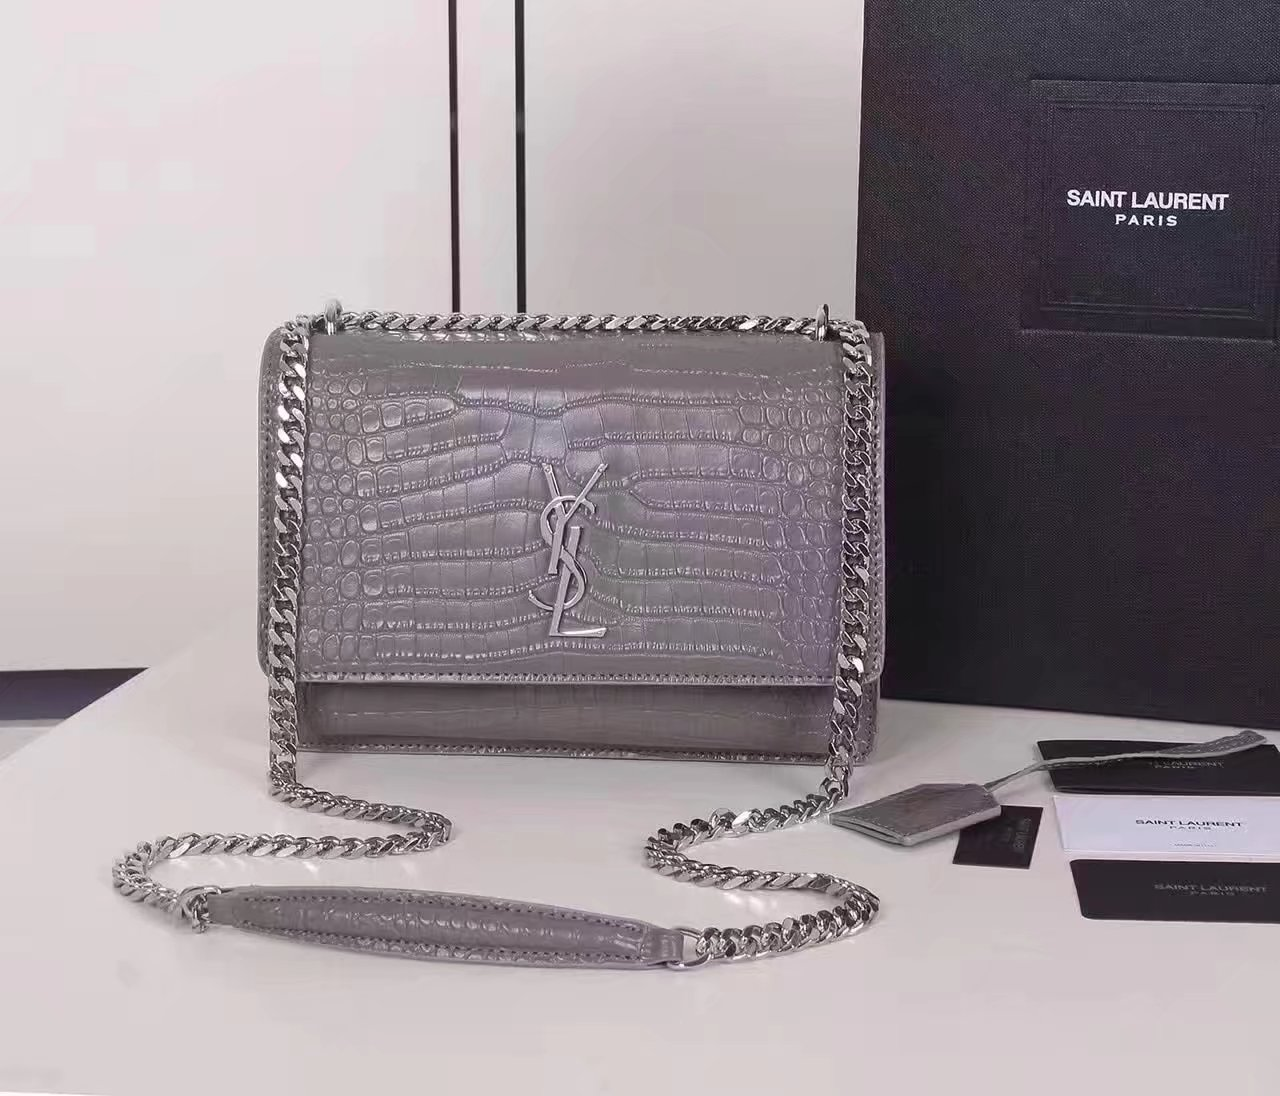 Yves Saint Laurent Medium Sunset Bag In Crocodile Embossed Shiny Leather Grey